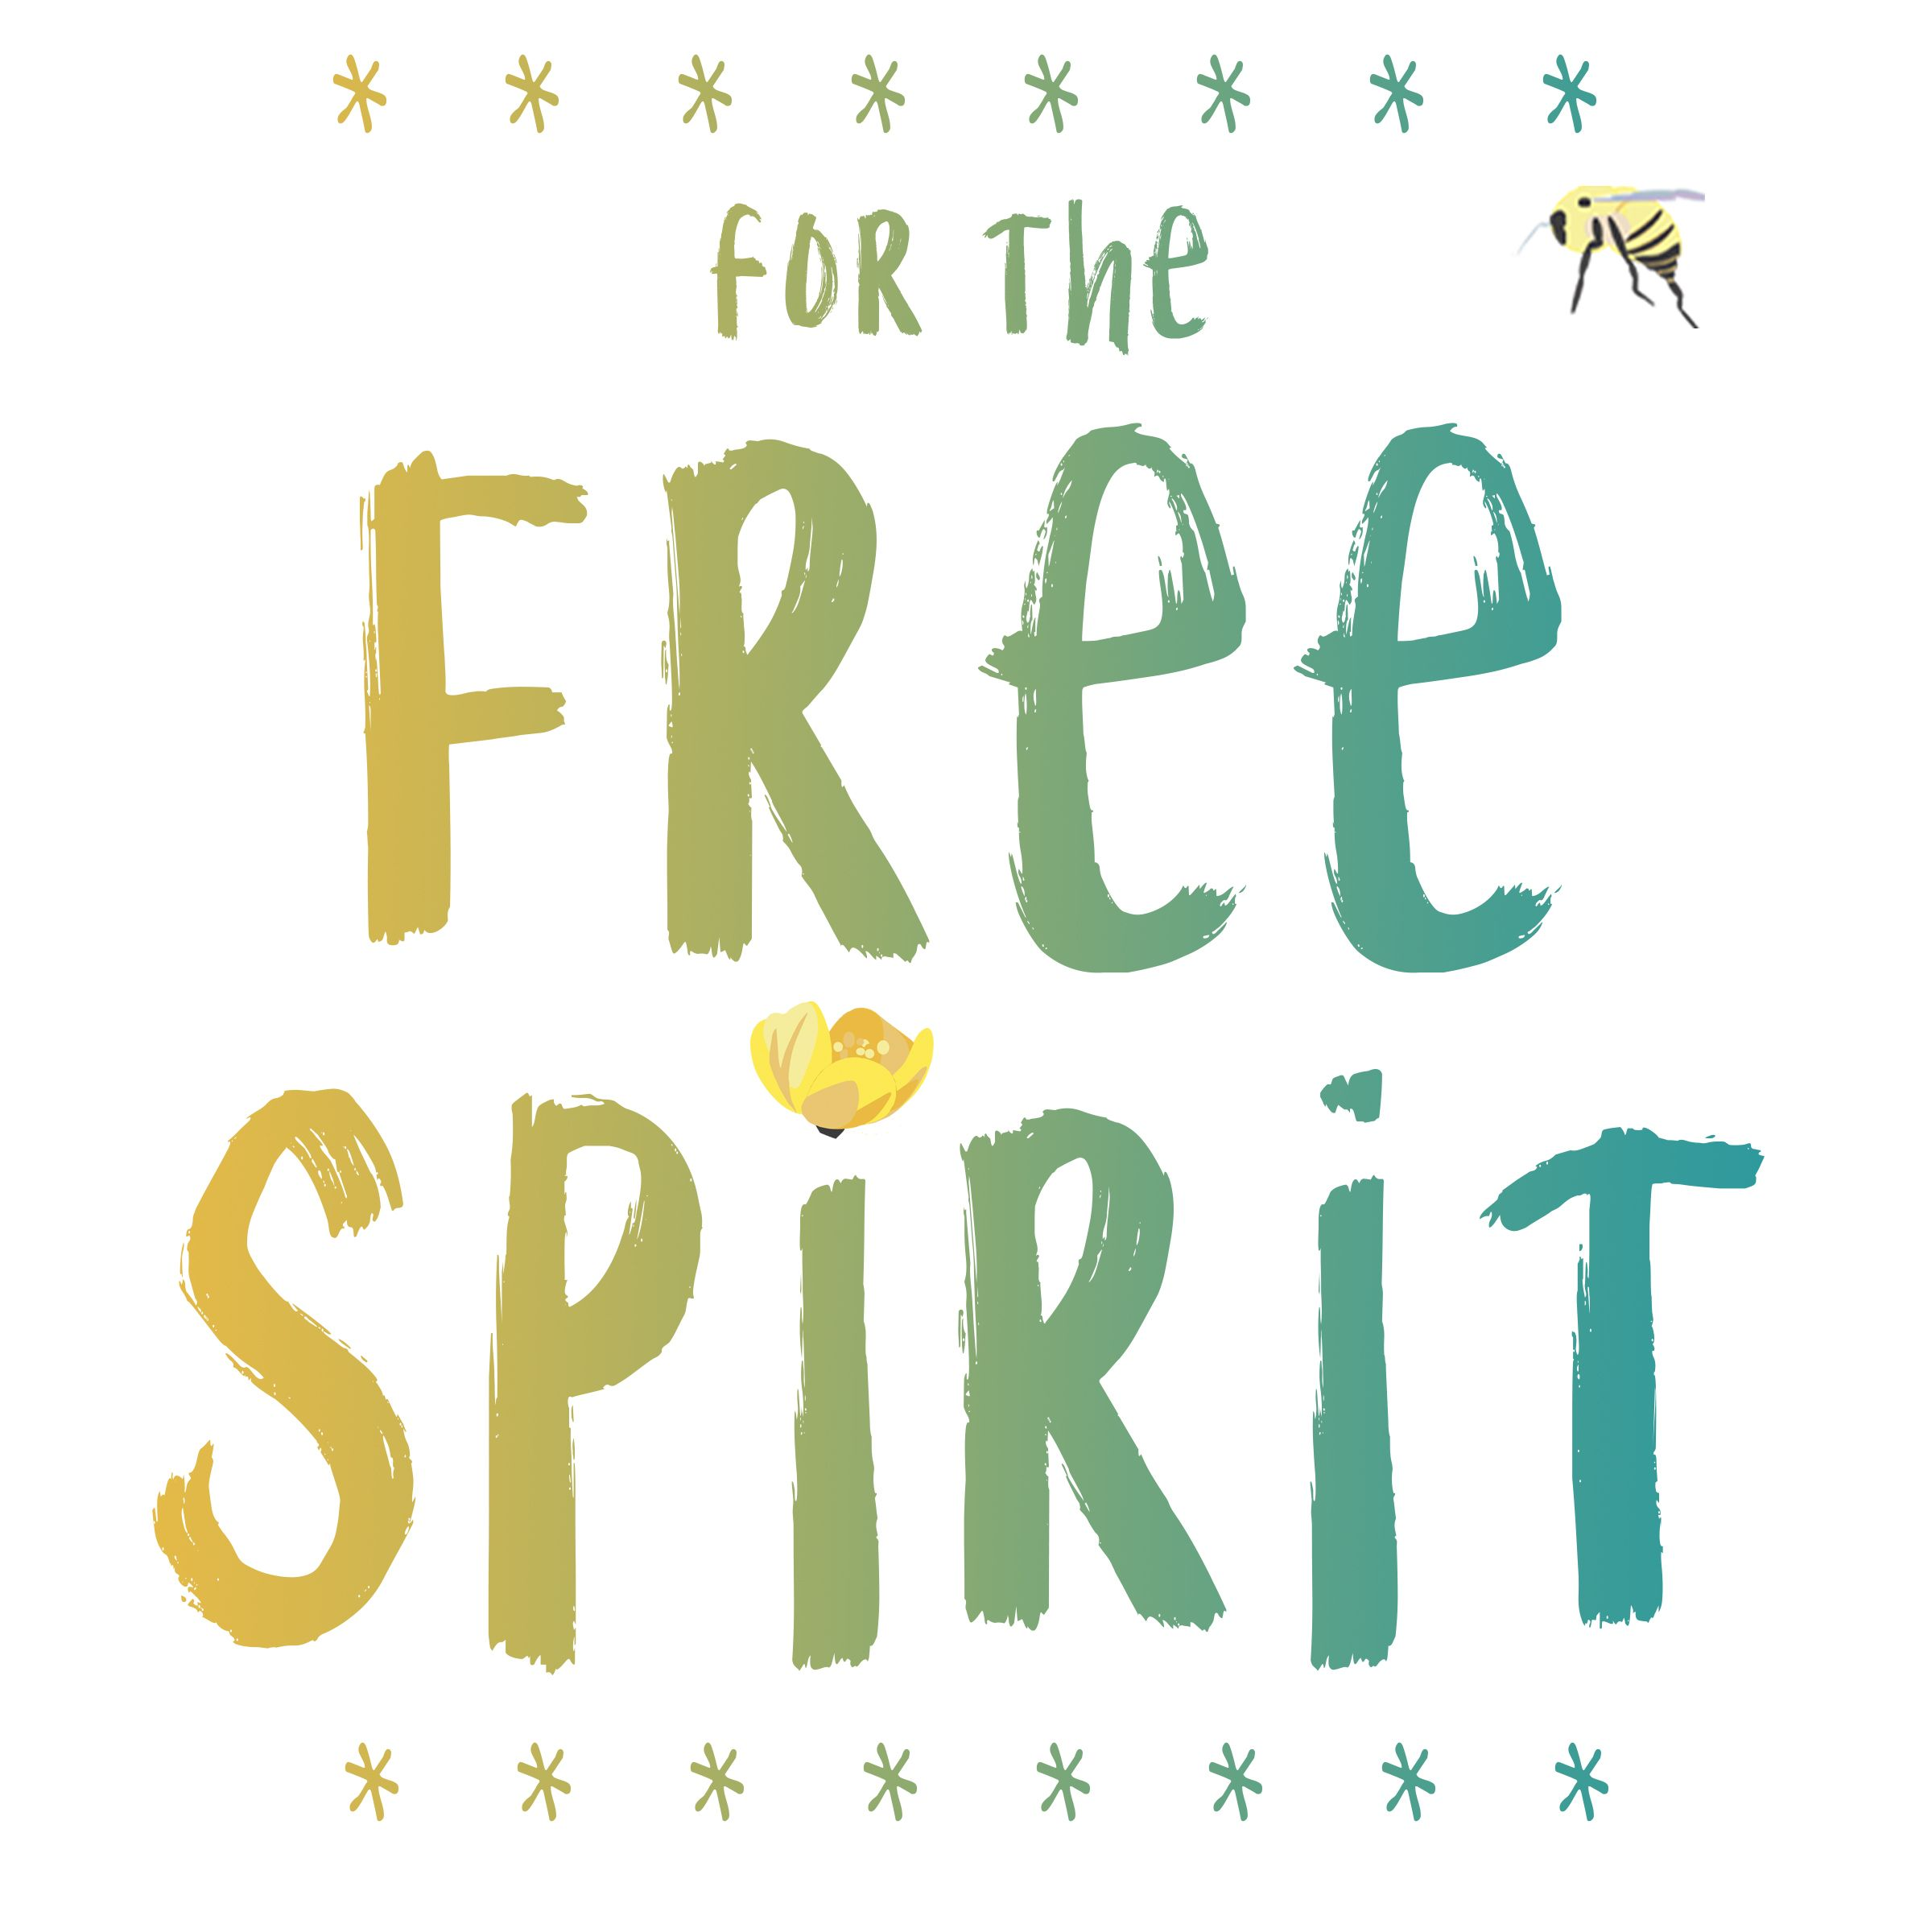 For the free spirit